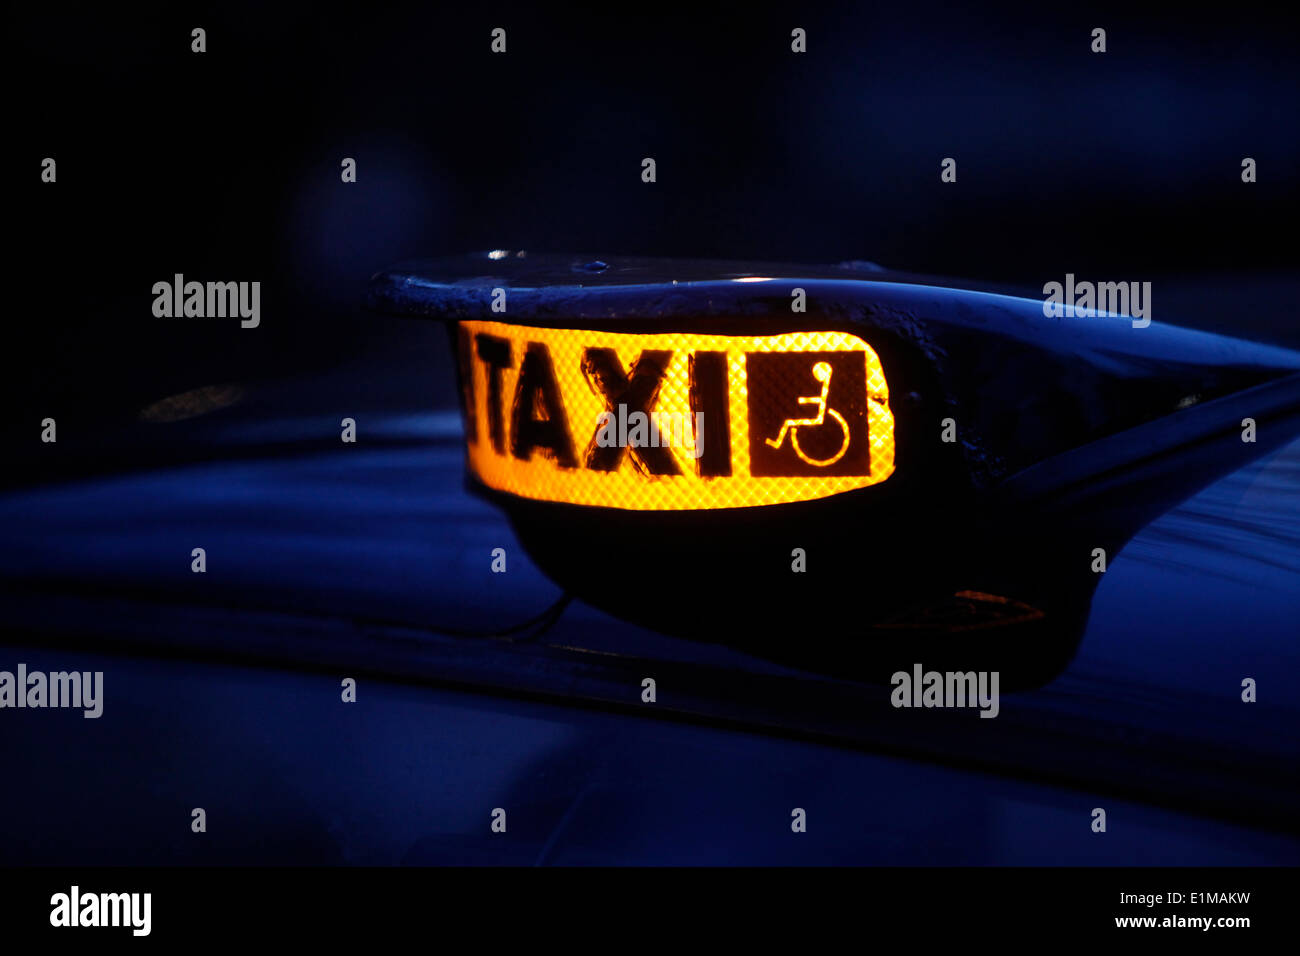 London taxi sign - Stock Image